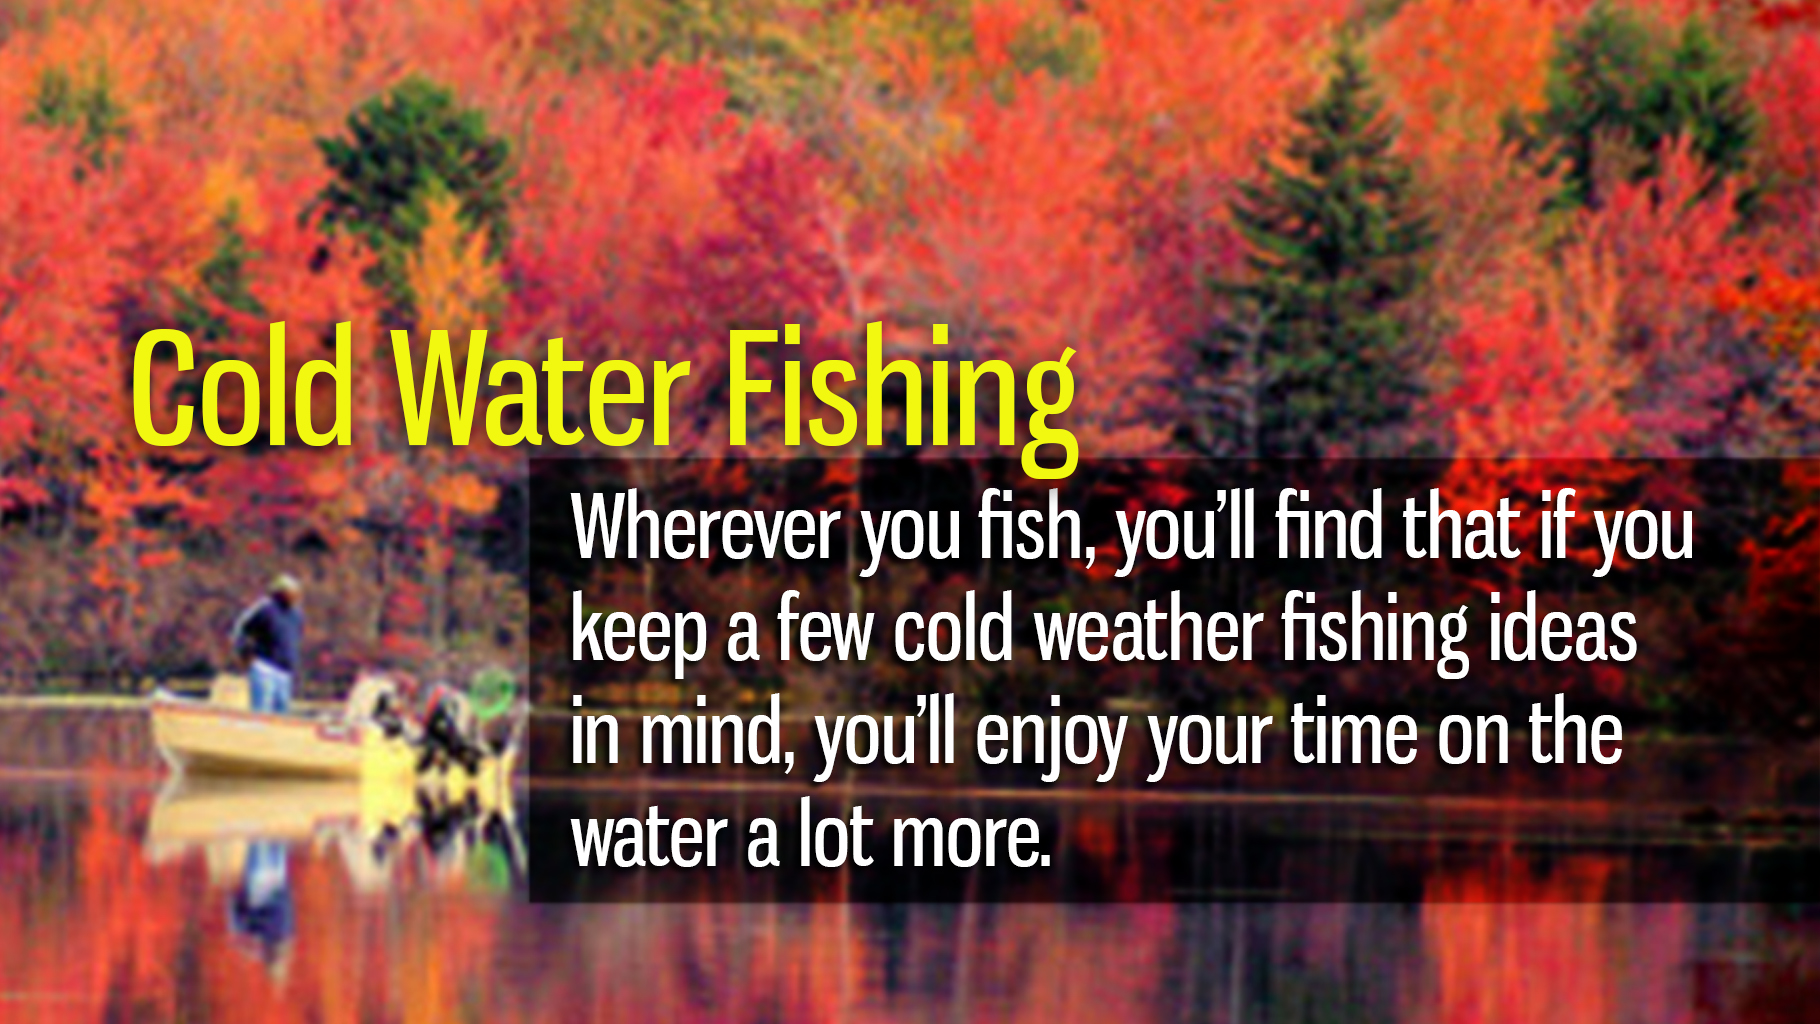 Cold Water Fishing